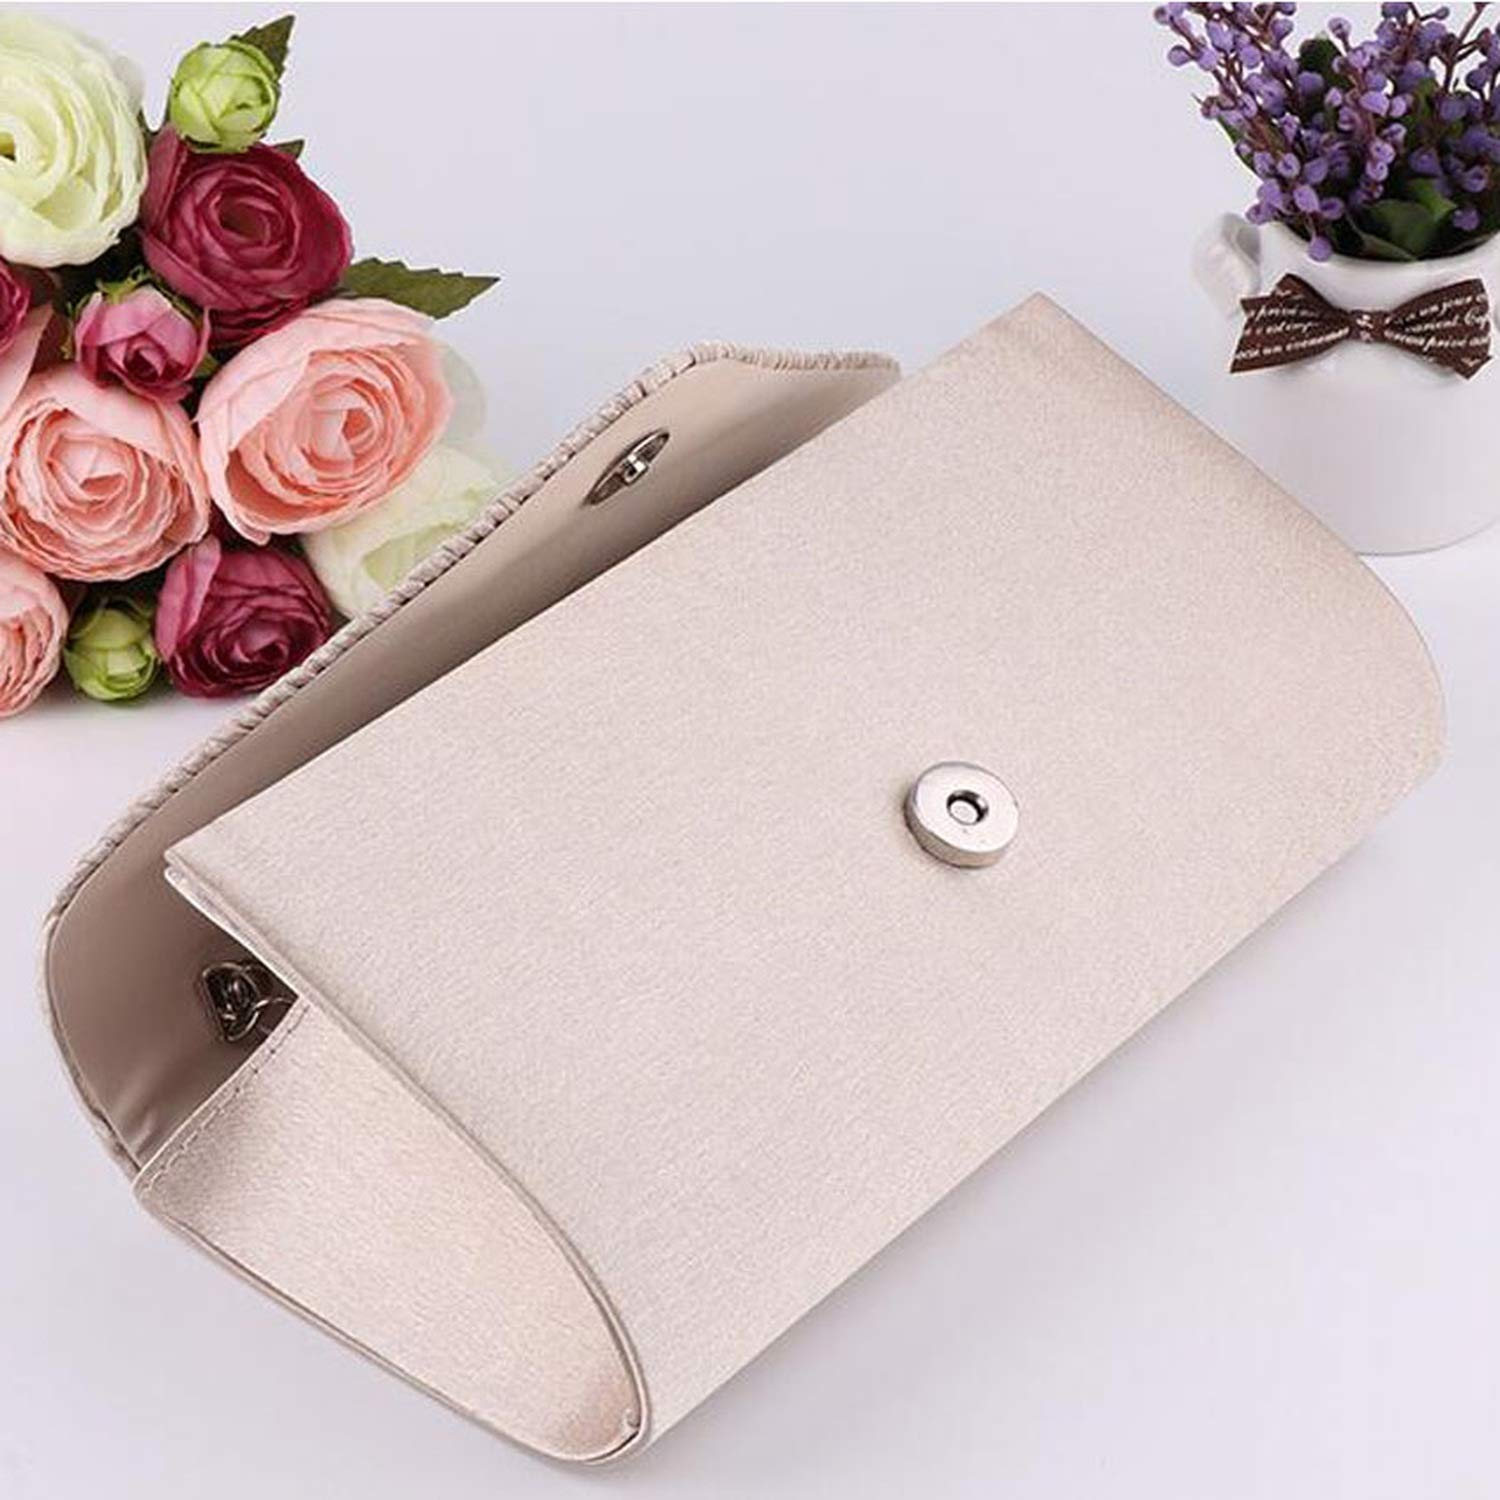 Women High-End Evening Bag Ladies Diamond Banquet Day Clutches Female Beaded Wedding Purses Chain Bolsos Bolsas, Apricot: Handbags: Amazon.com